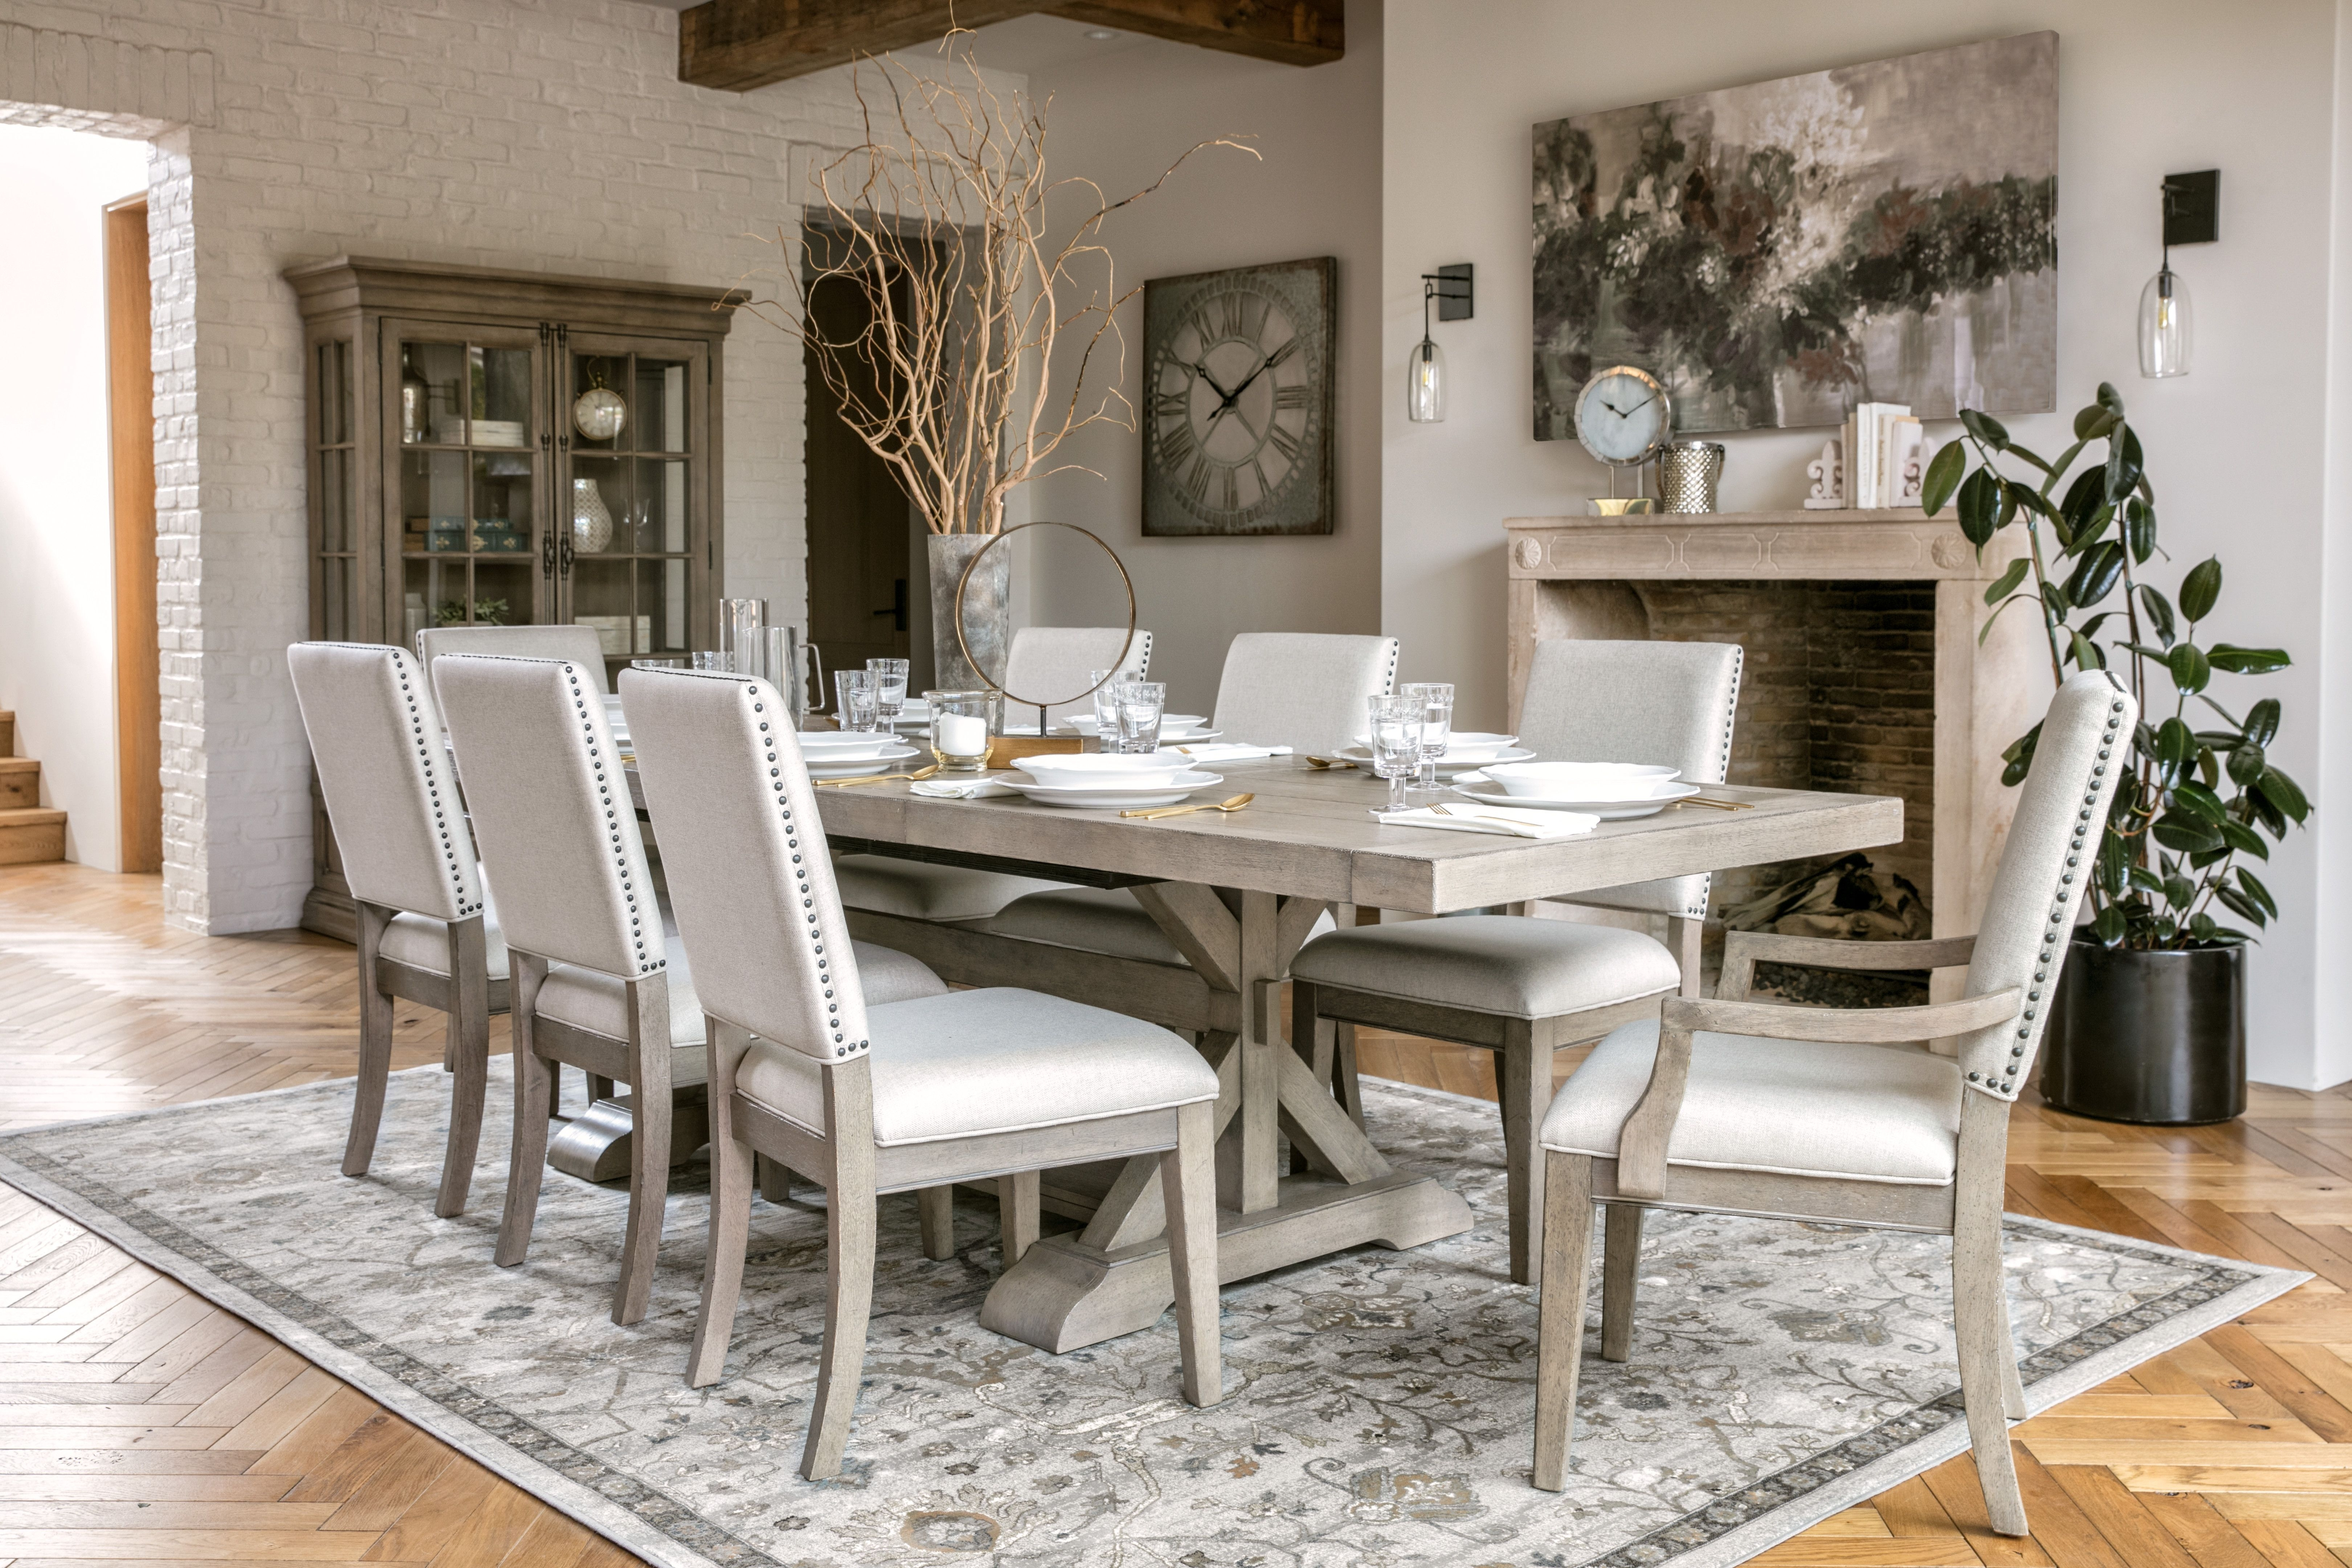 Walden 9 Piece Extension Dining Set | Nailhead Trim, Side Chair And With Regard To Most Current Walden 7 Piece Extension Dining Sets (Image 19 of 20)